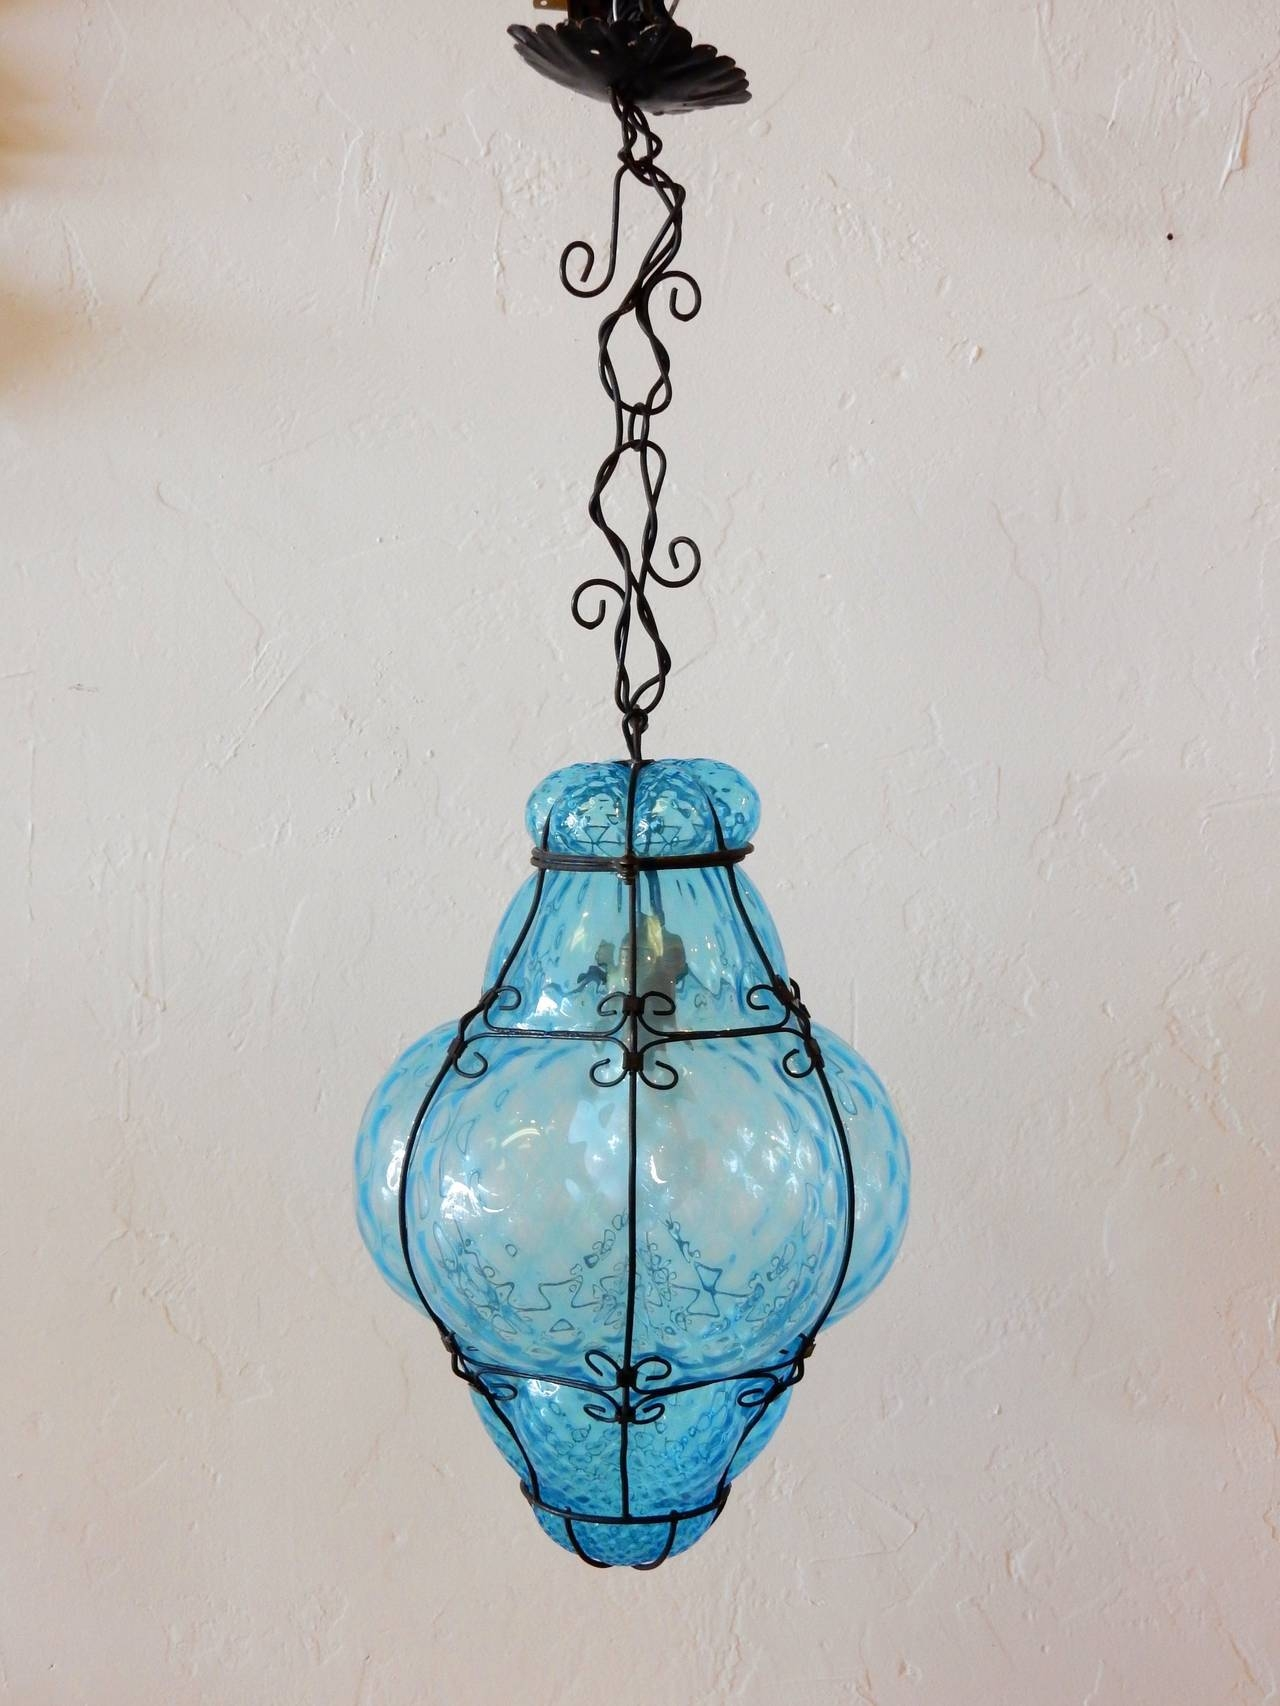 Italian Cage Art Glass Pendant Lampseugso In Aqua Blue At 1Stdibs in Aqua Pendant Lights (Image 10 of 15)